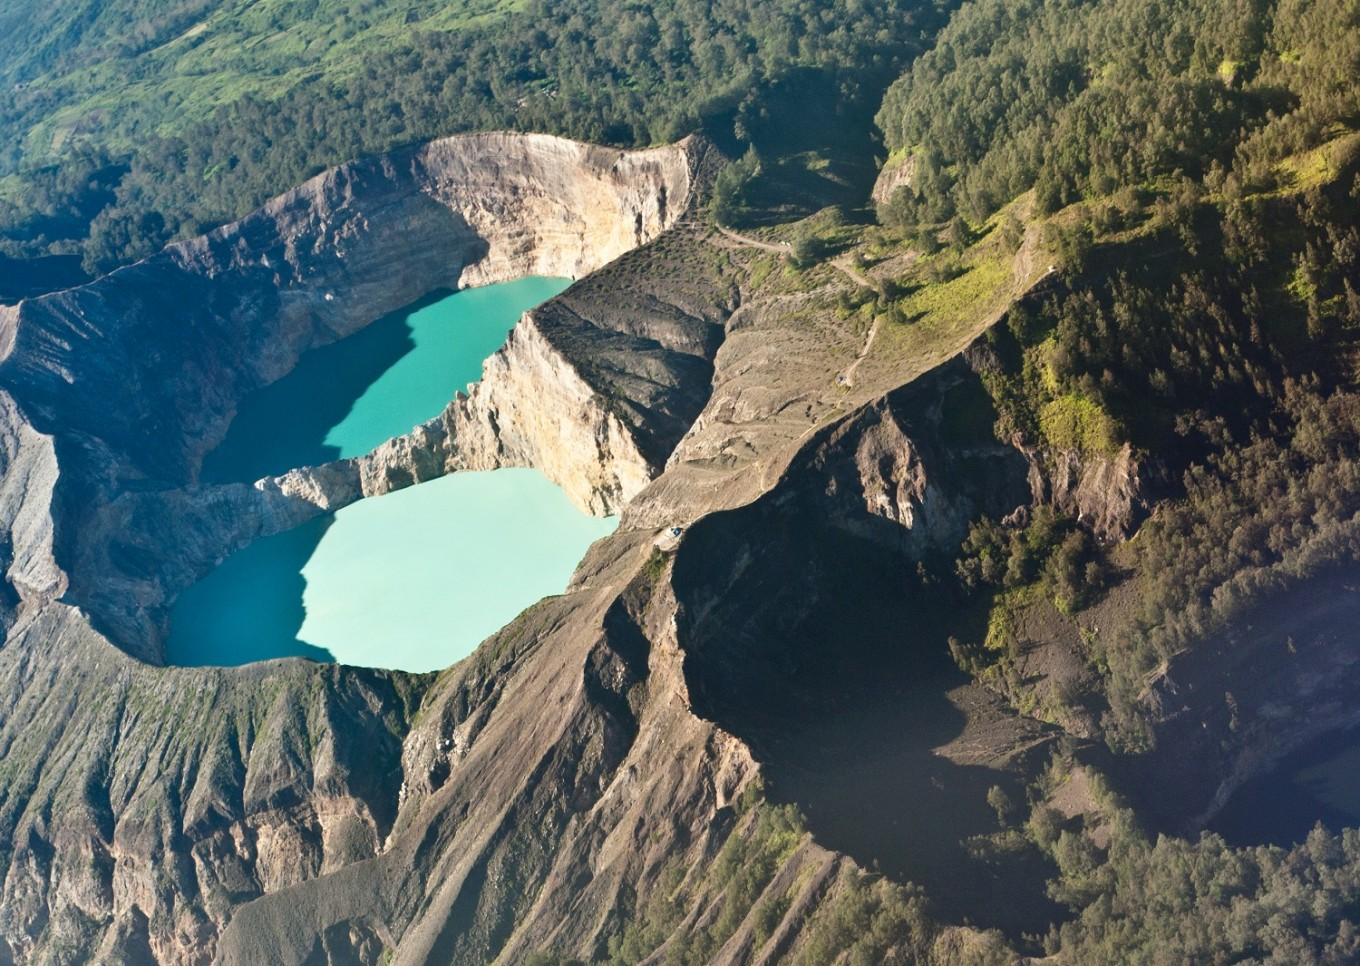 Kelimutu lakes change color for the 6th time this year